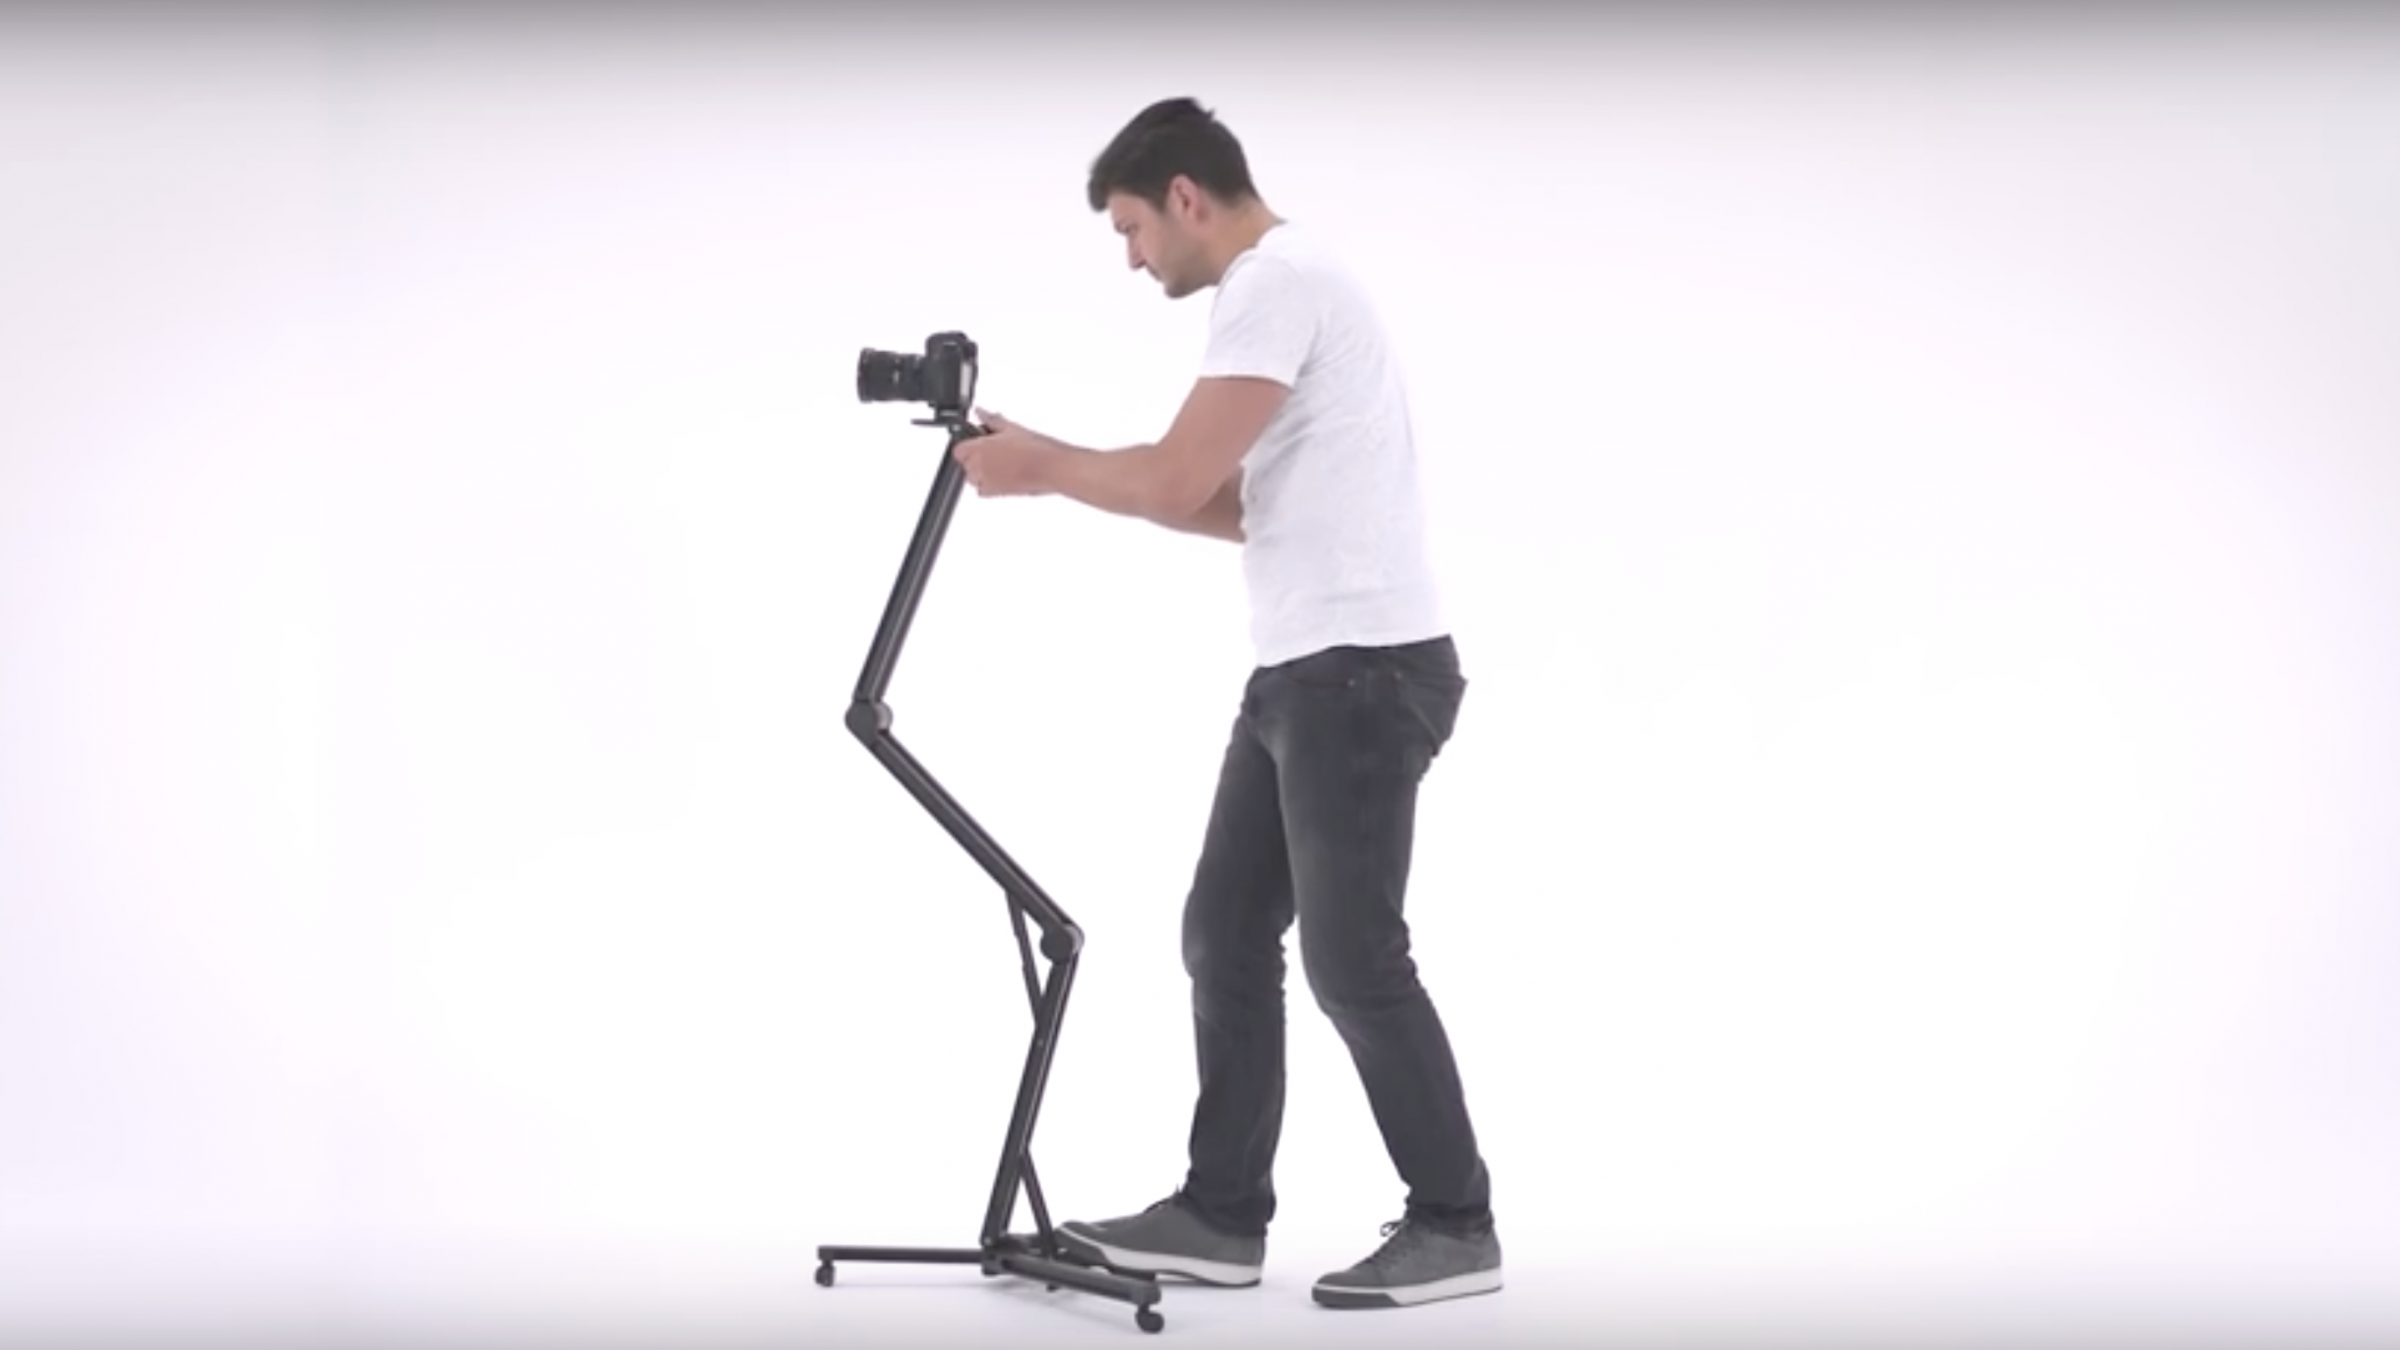 Edelkrone Unveils New Rig, Follow Focus and First of its Kind Tripod